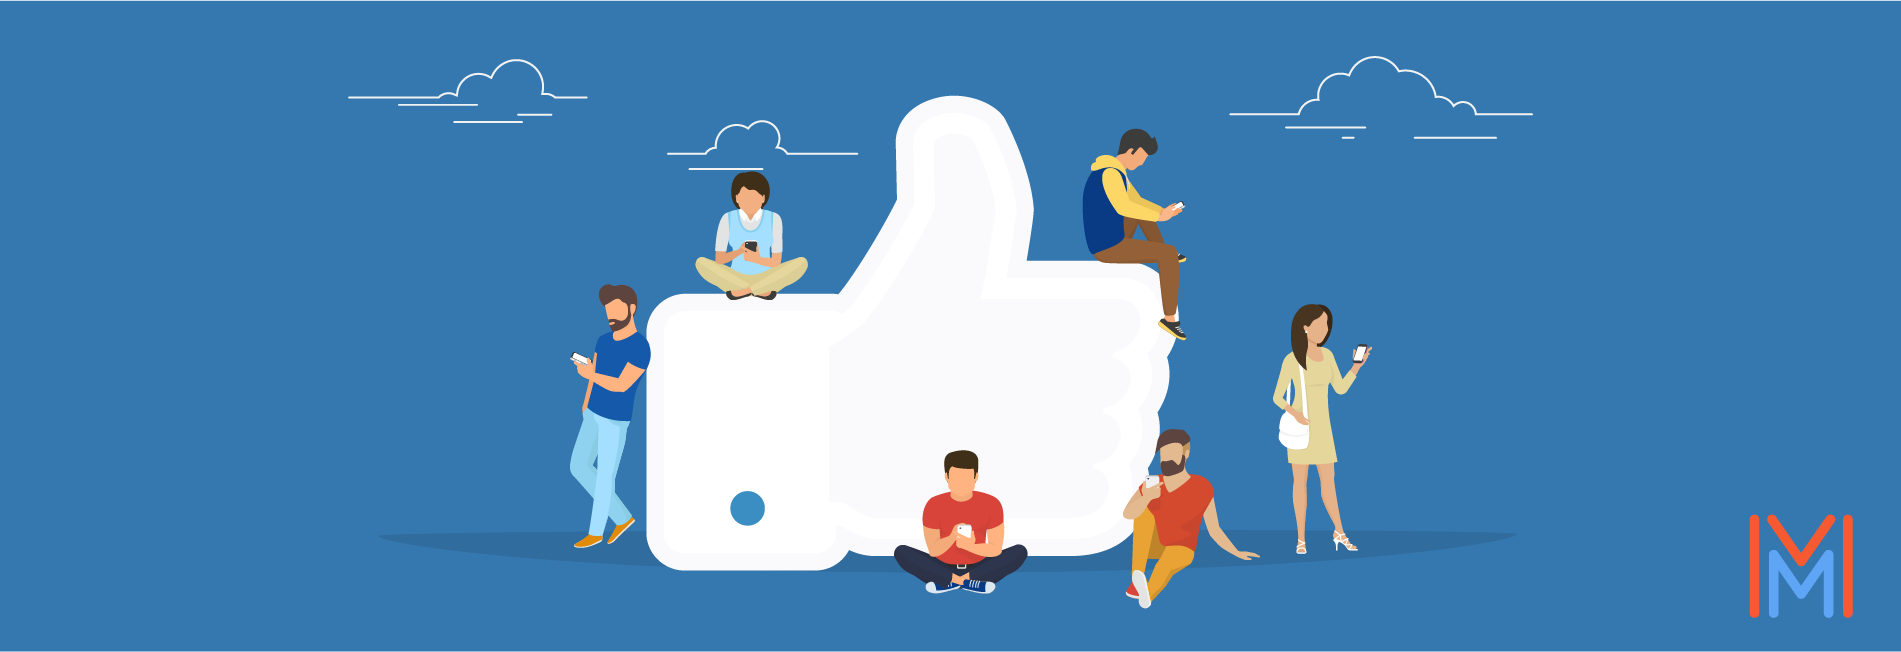 How to setup a Facebook account the right way